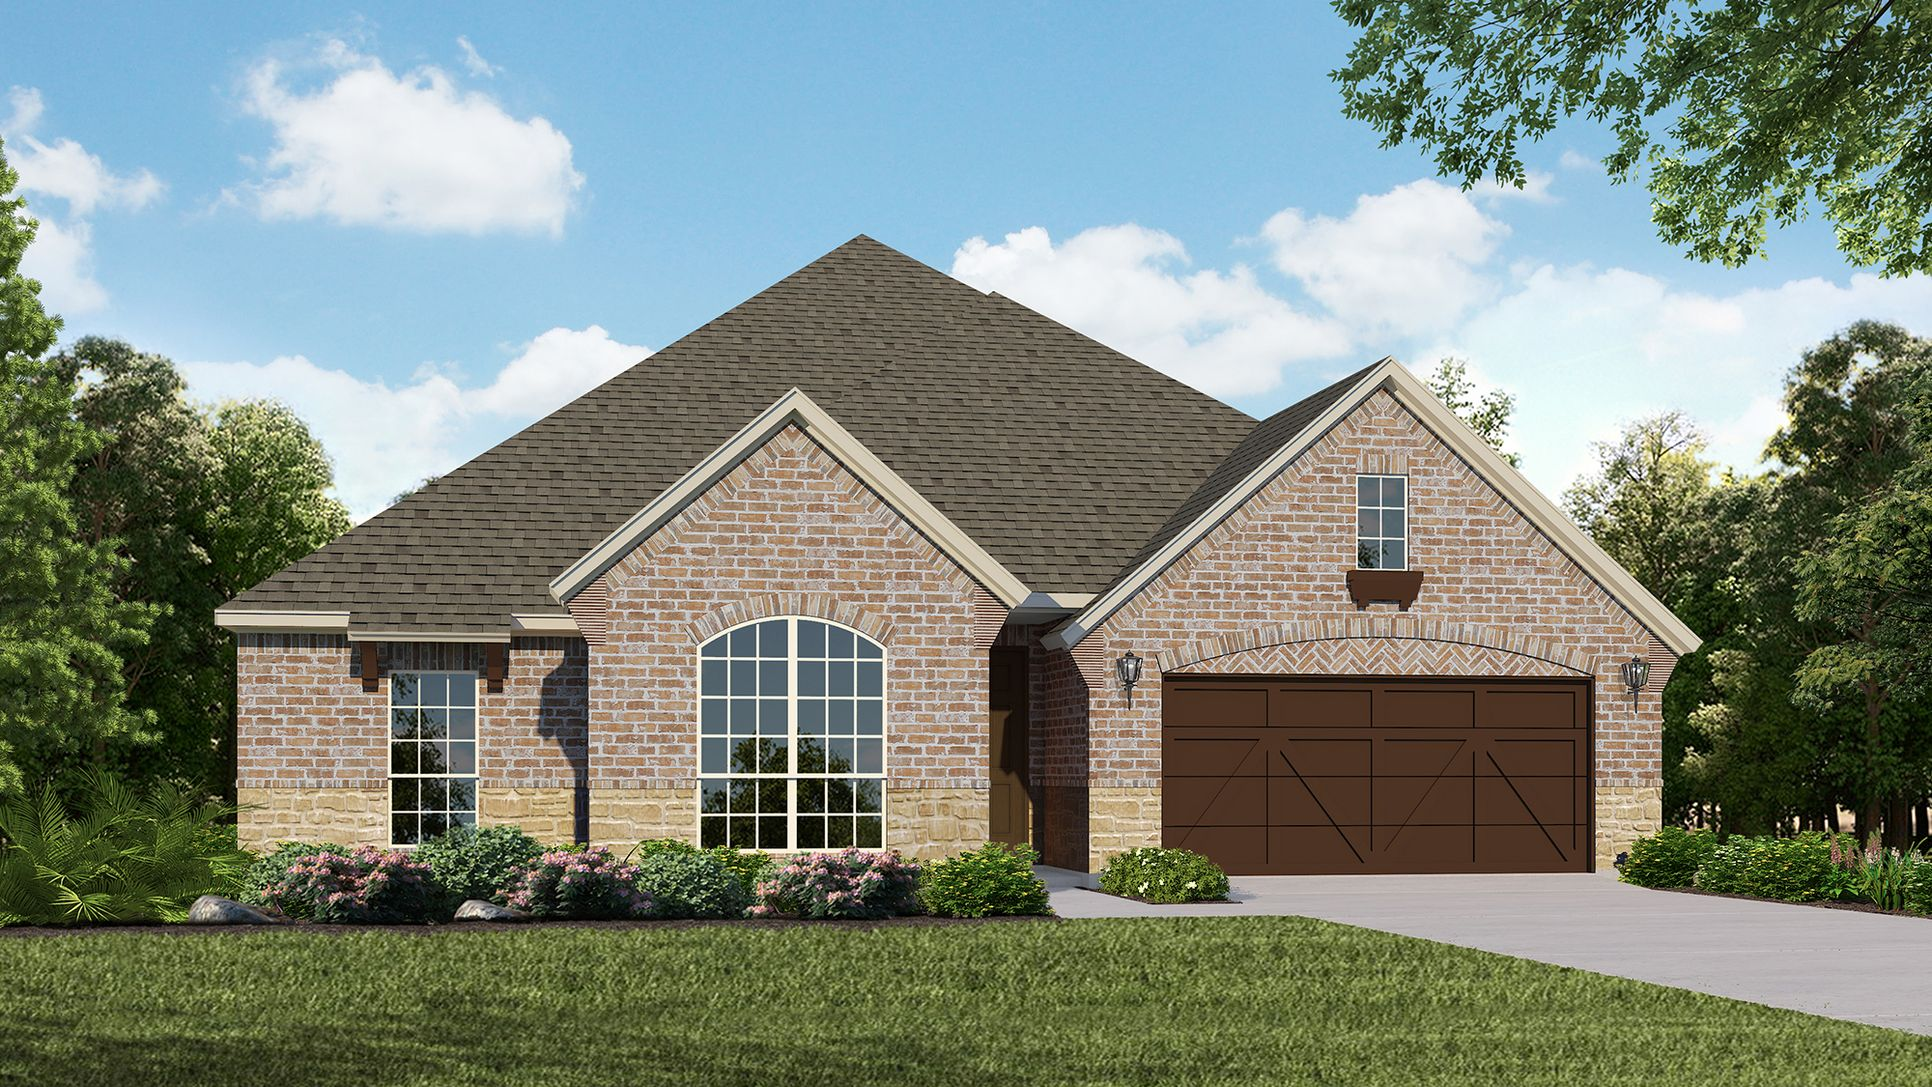 Exterior:Plan 1606 Elevation A with Stone by American Legend Homes